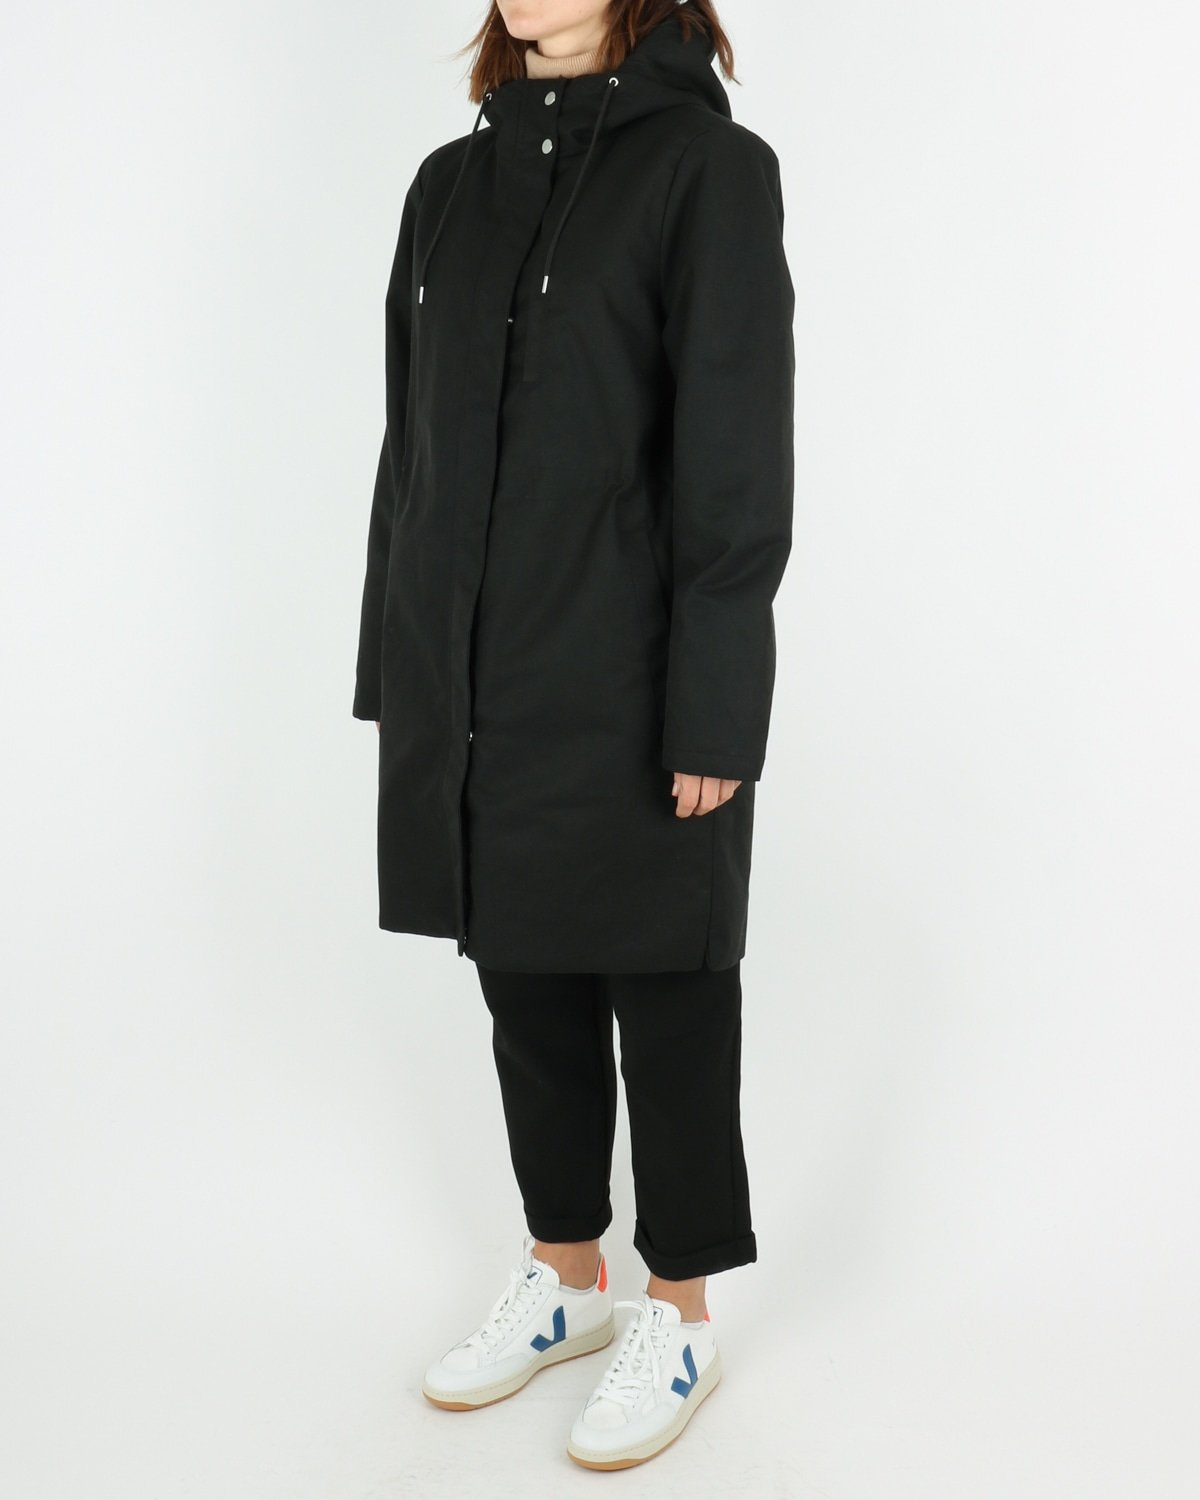 selfhood_parka jacket 77130_black_2_6